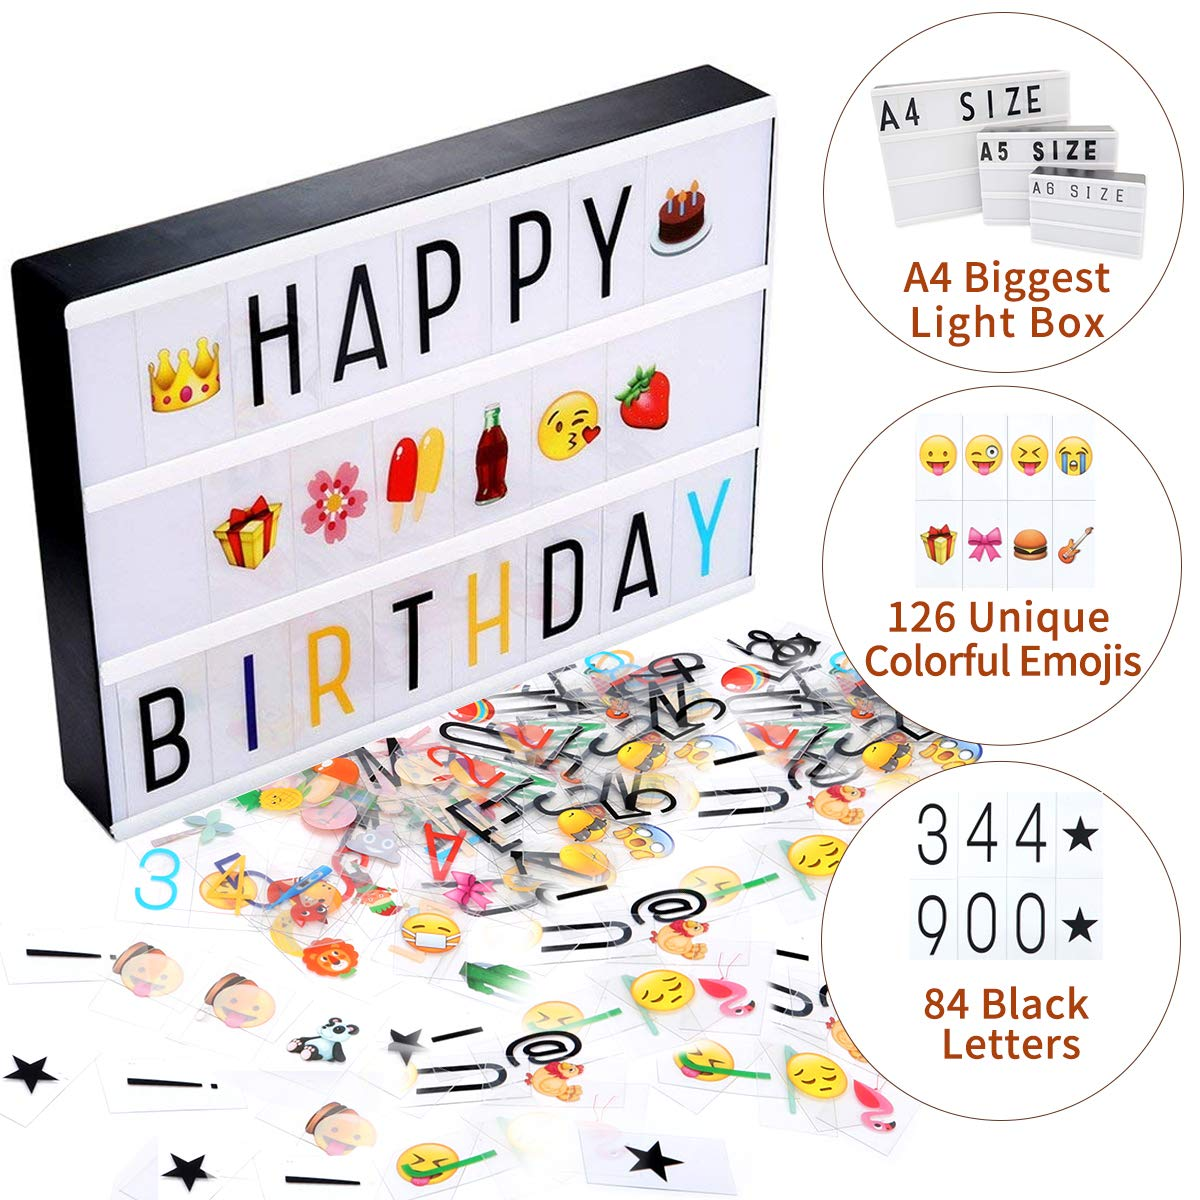 Jeteven A4(12 x 8.74 inch) Cinematic Light Box,210 Letters and Colored Emojis Cinema Light Box, LED Lightbox for Home Decor/Wedding/Birthday Parties - USB/Battery Powered